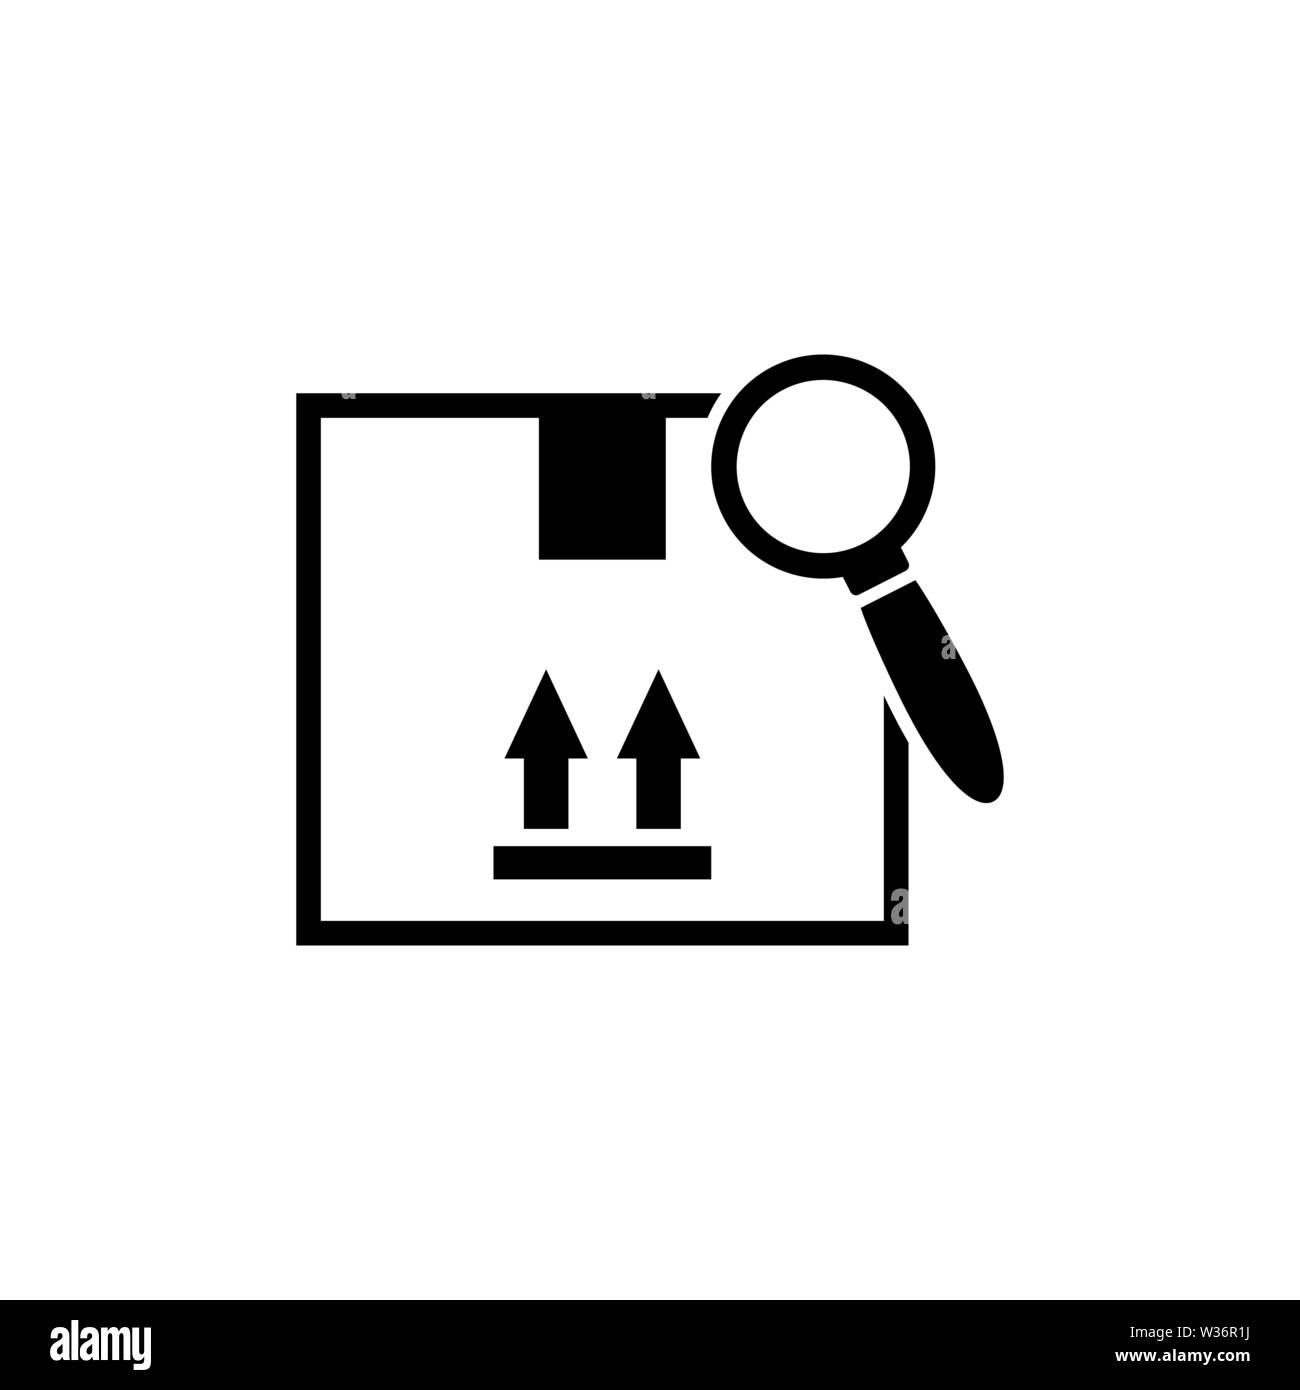 Search Delivery Service. Flat Vector Icon illustration. Simple black symbol on white background. Search Delivery Service sign design template for web - Stock Image